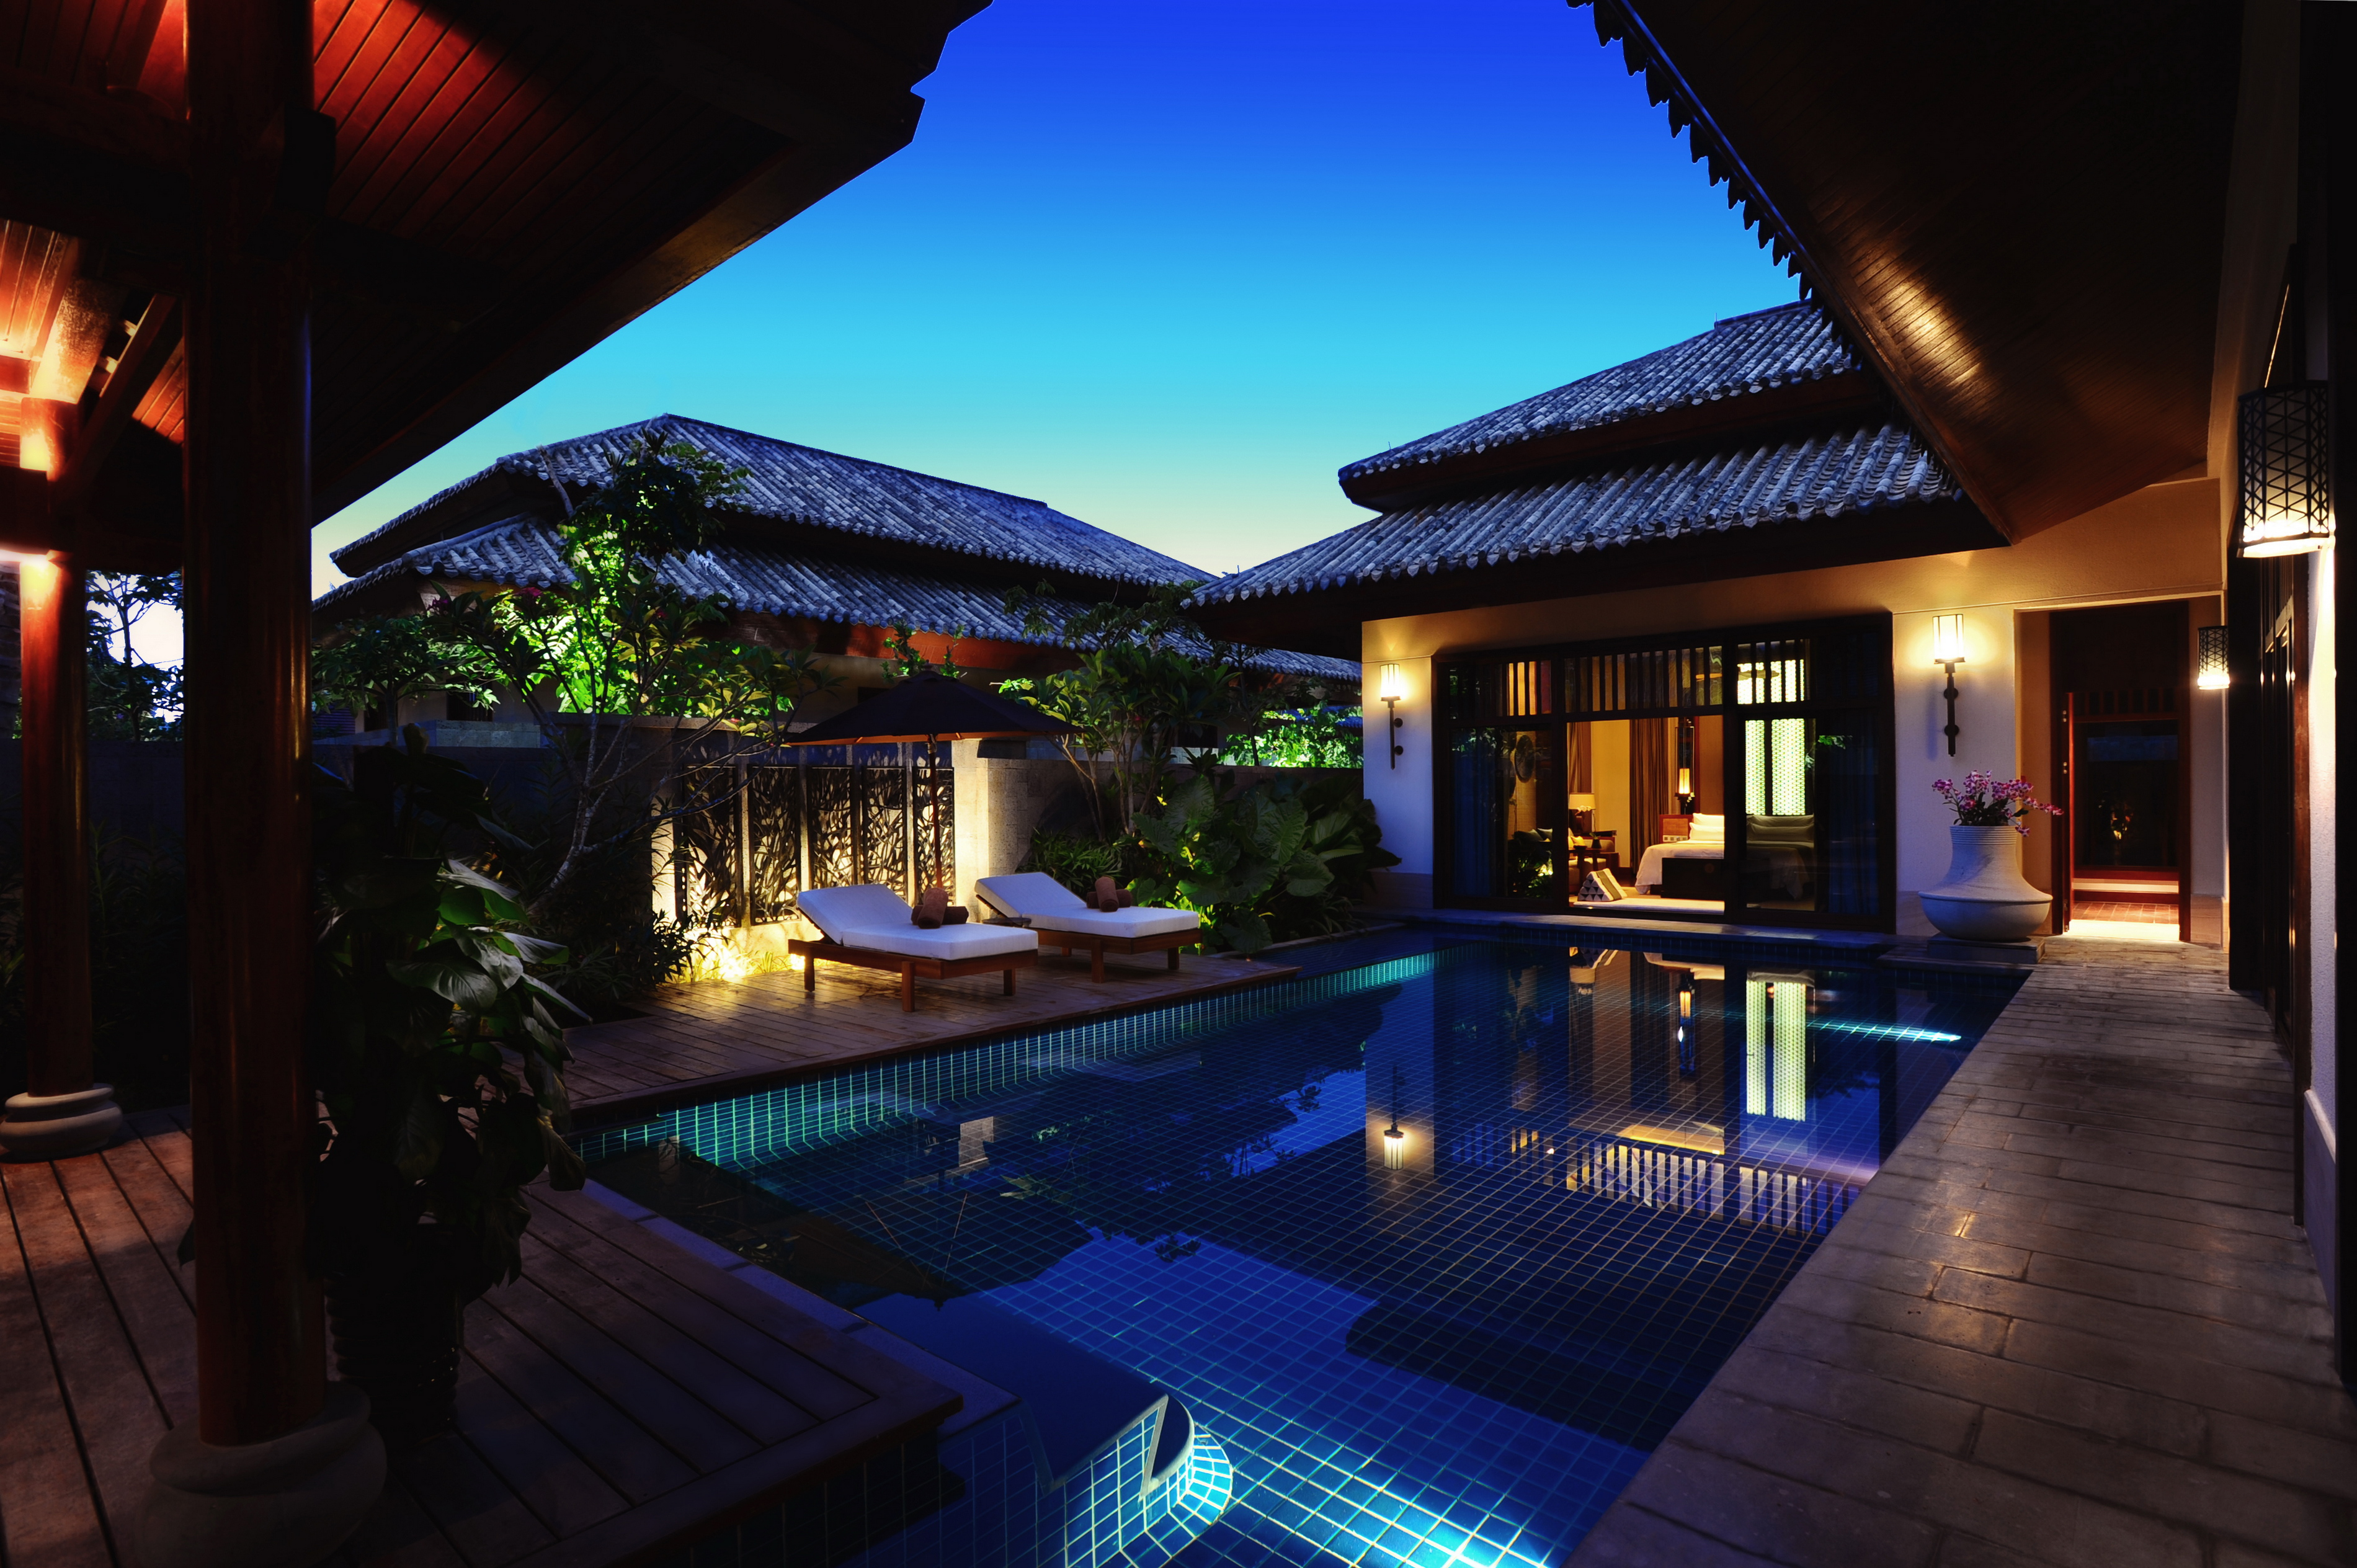 SOCIALIGHT Anantara Sanya 1013_Spa_Pool_Villa_exterior_by_night